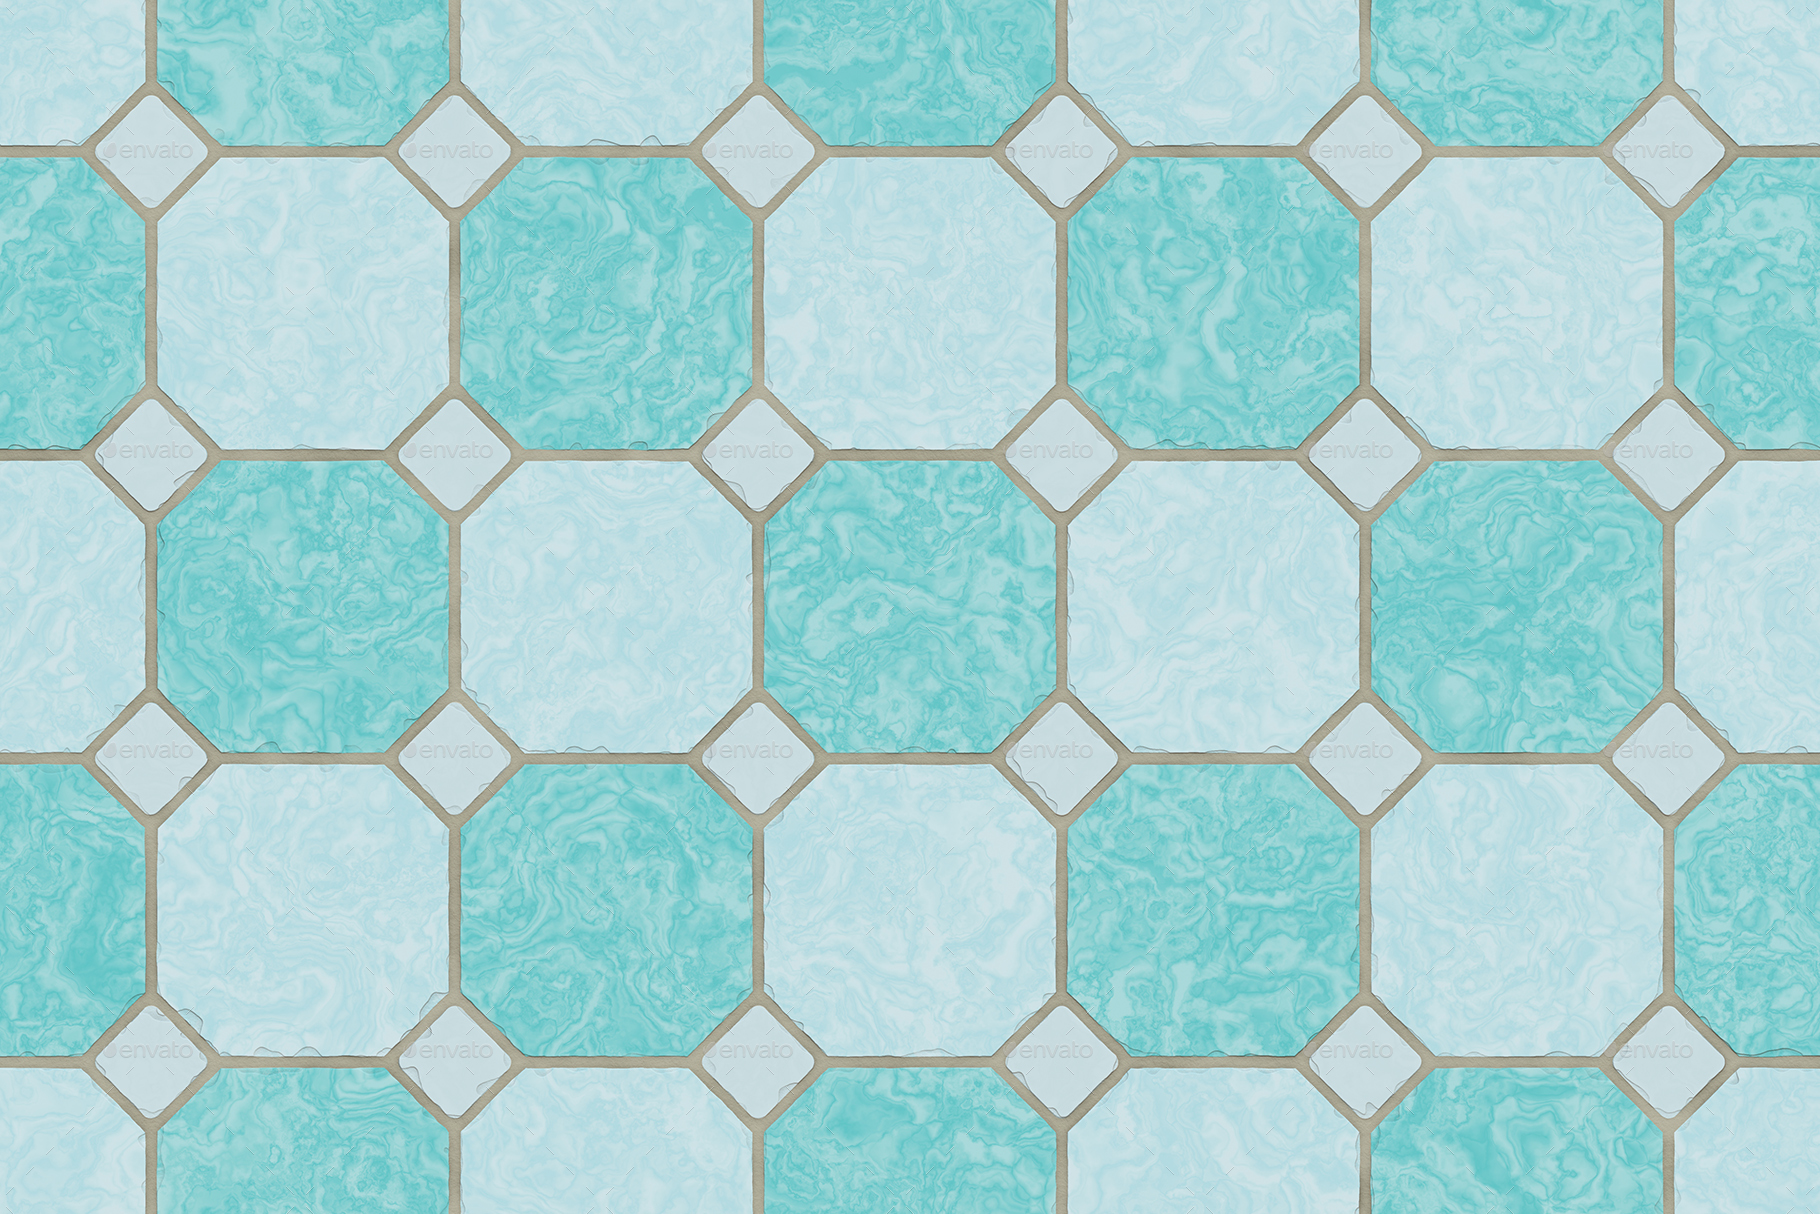 10 Classic Floor Tile Textures By Webcombo 3docean